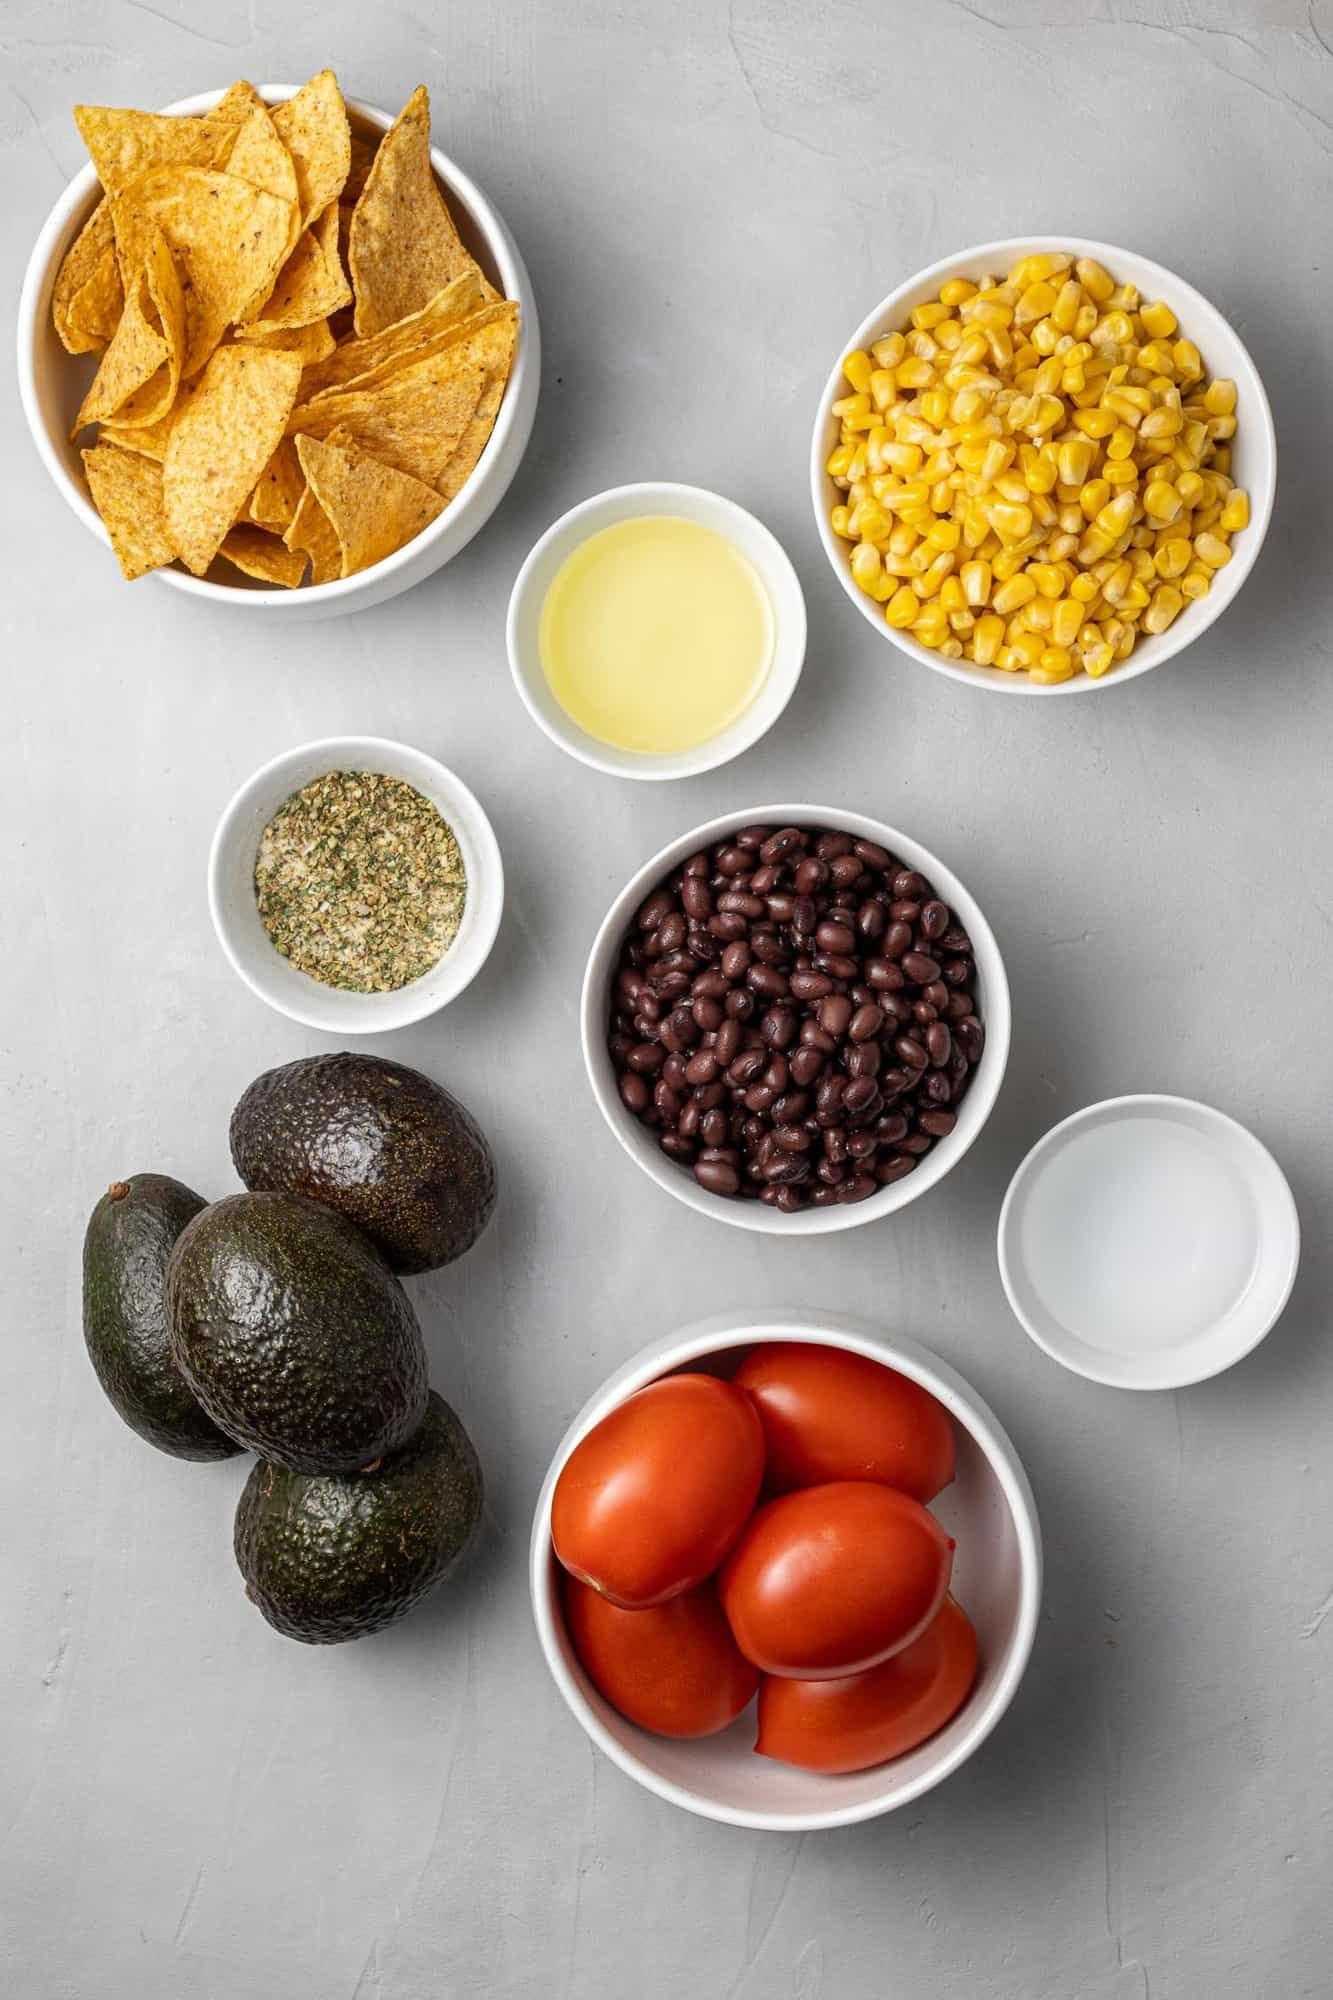 Overhead view of ingredients: tomatoes, corn, avocados, beans, chips.